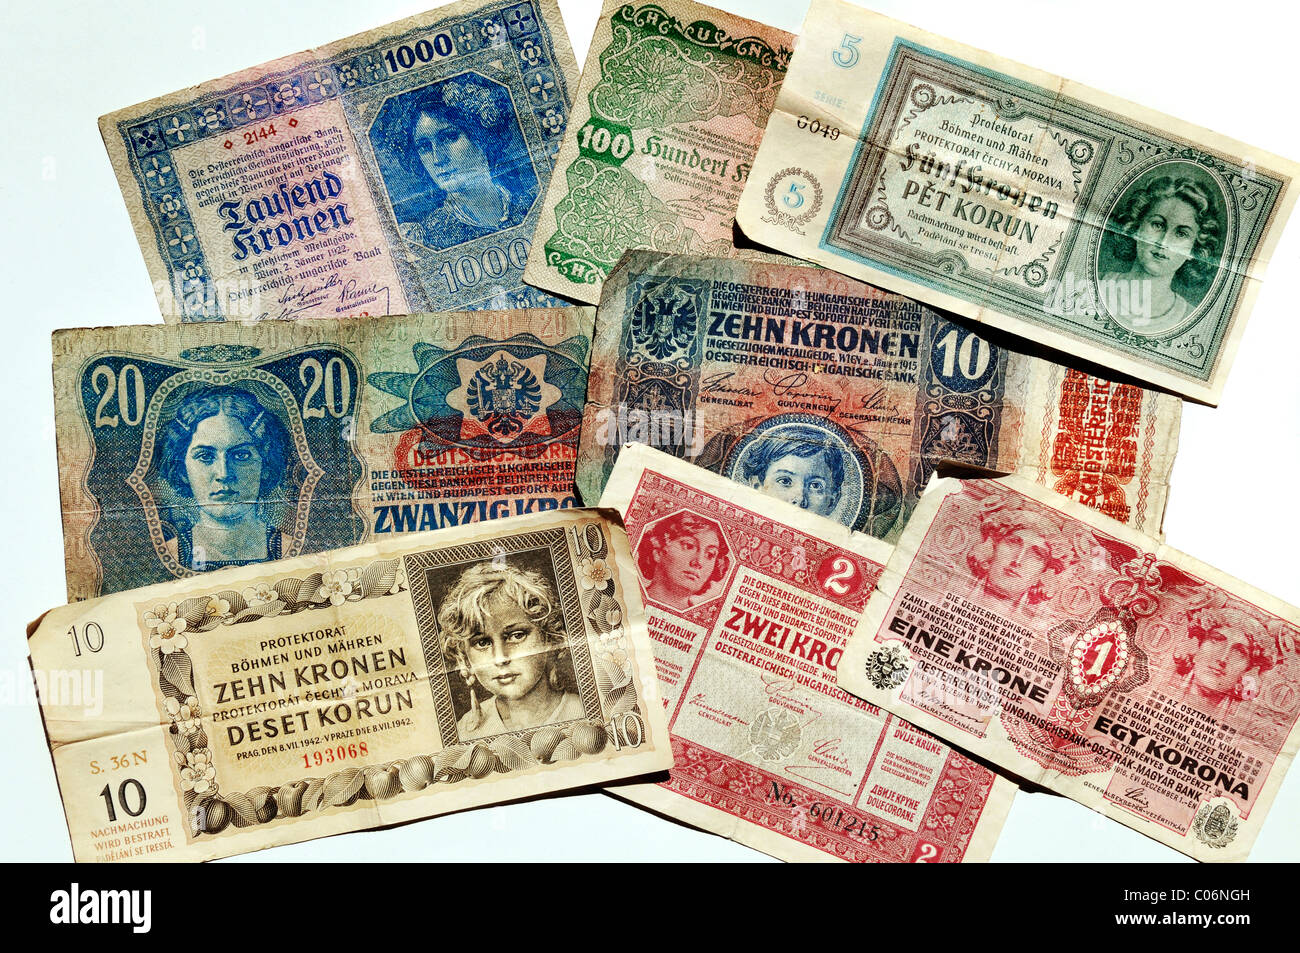 Kronen banknotes, Austro-Hungarian Bank and the Protectorate of Bohemia and Moravia, 1915-1942, Europe - Stock Image